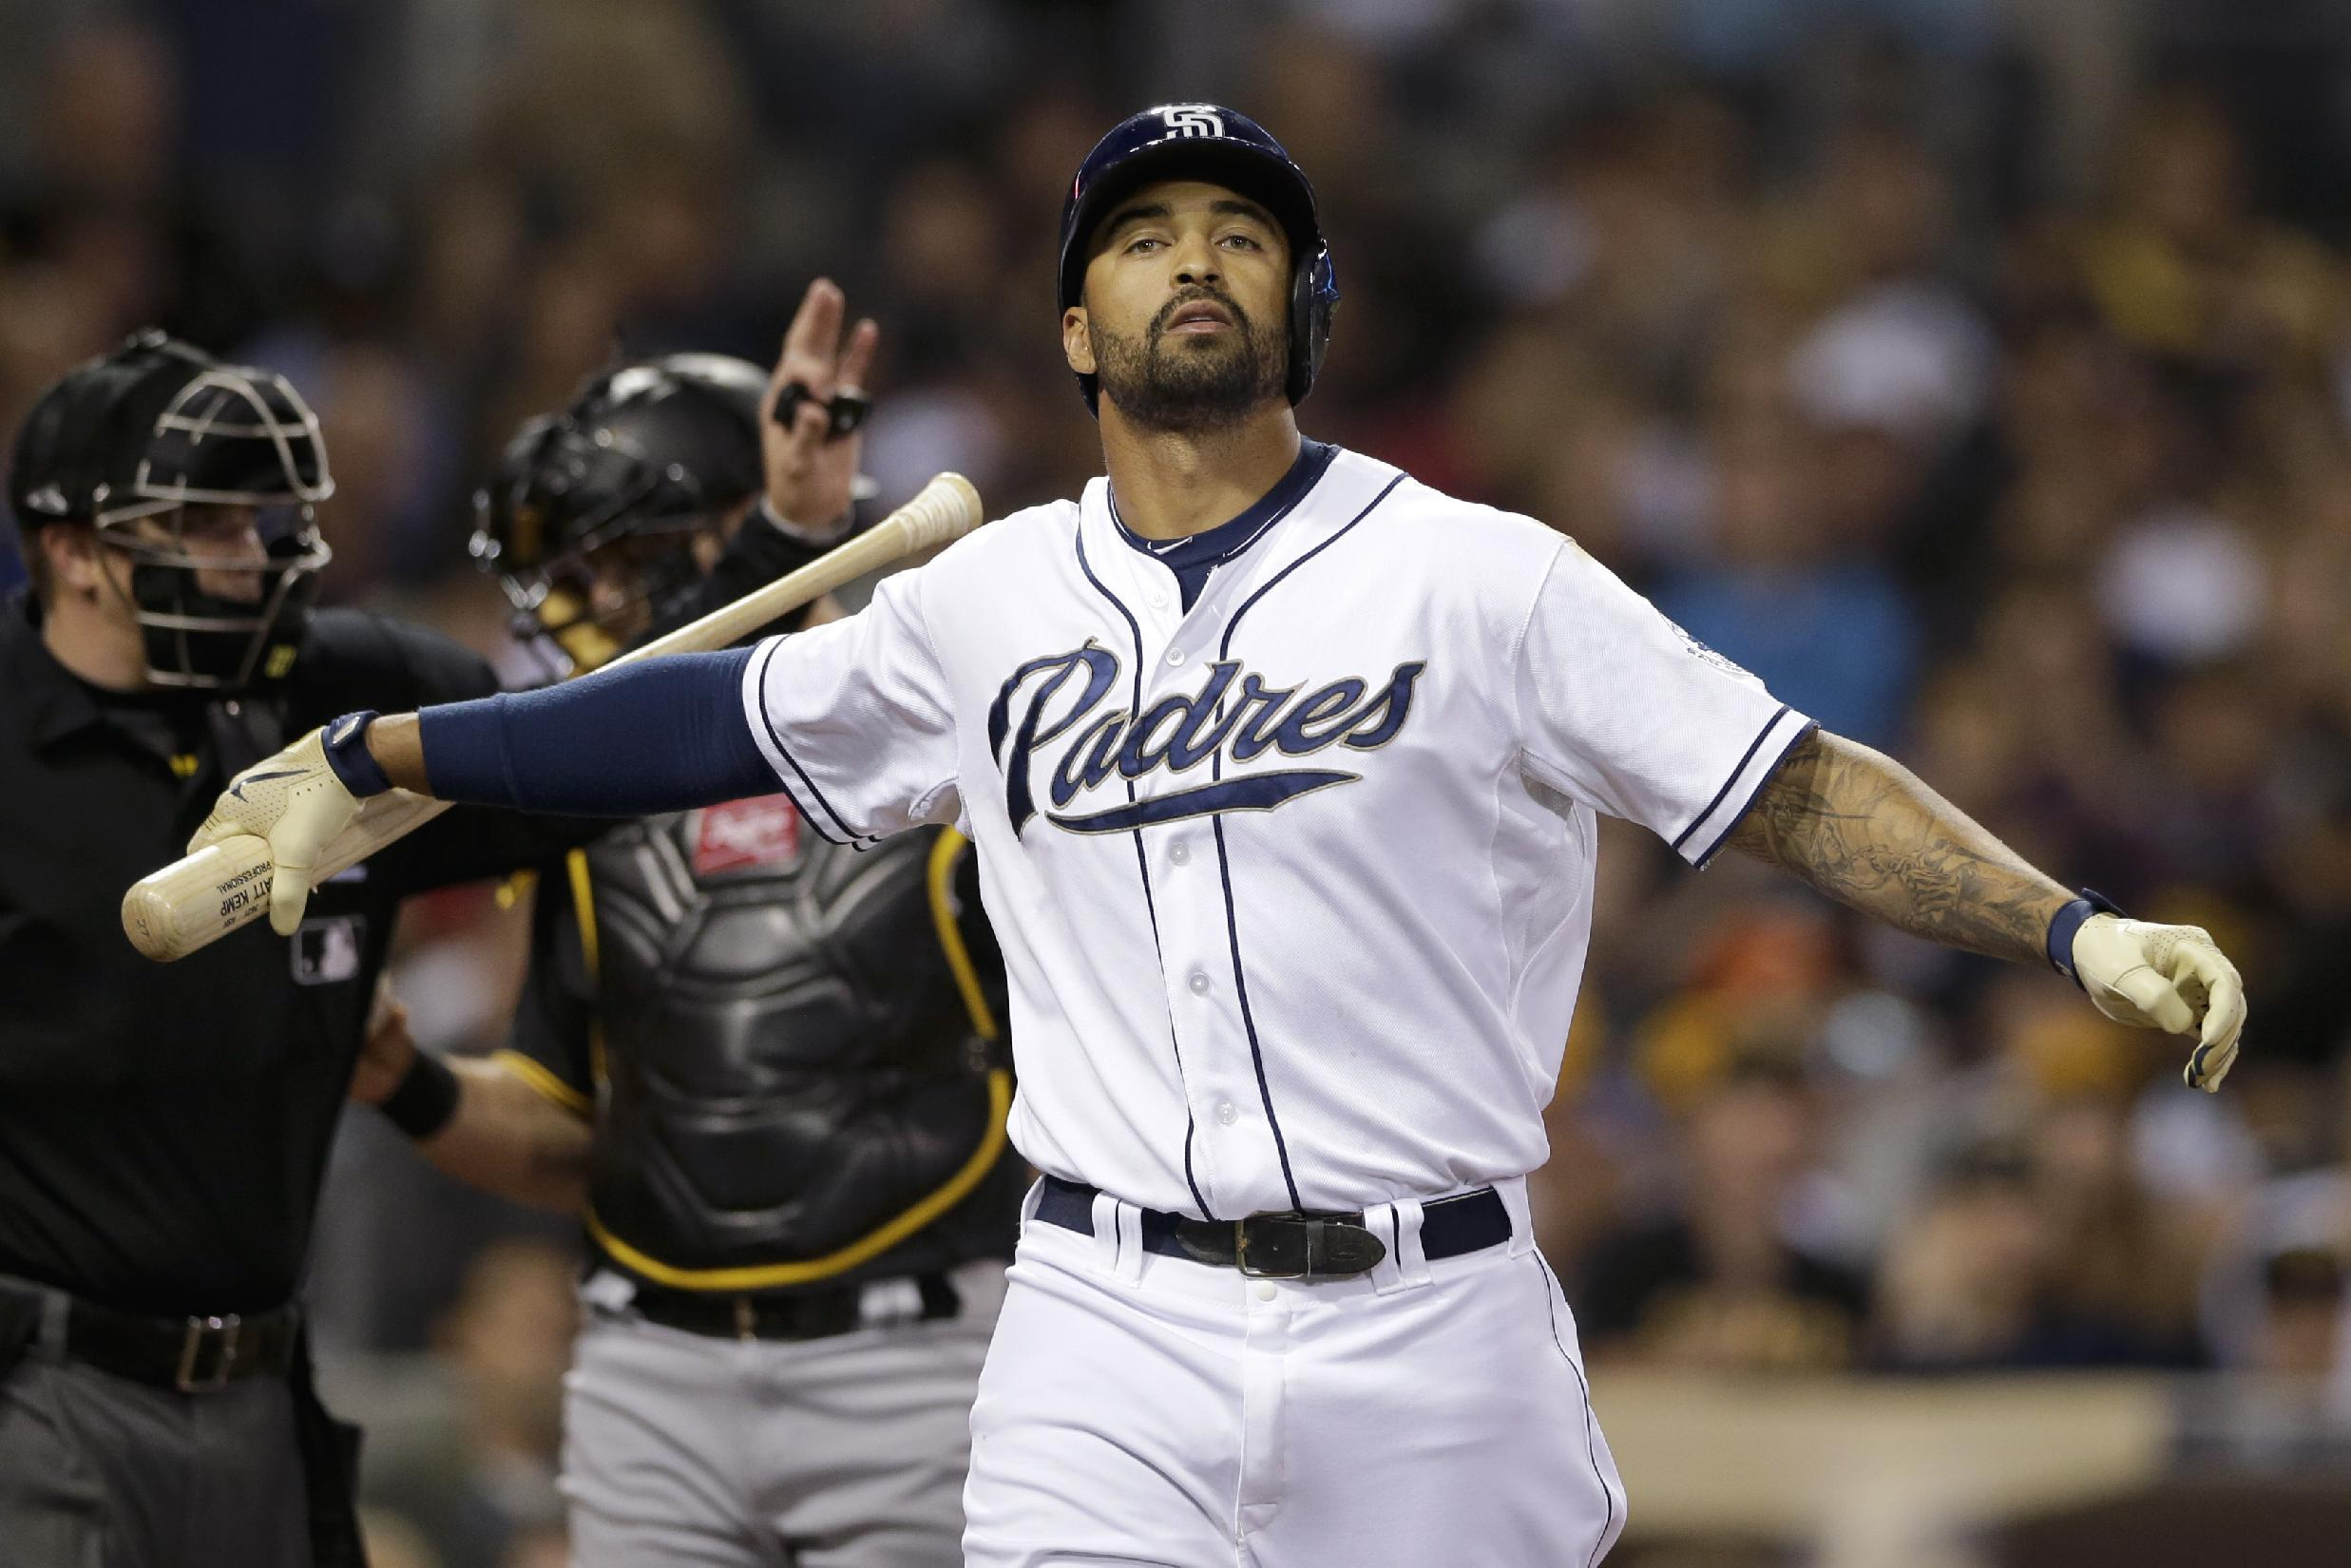 Norris' grand slam lifts Padres to 6-2 win vs Pirates